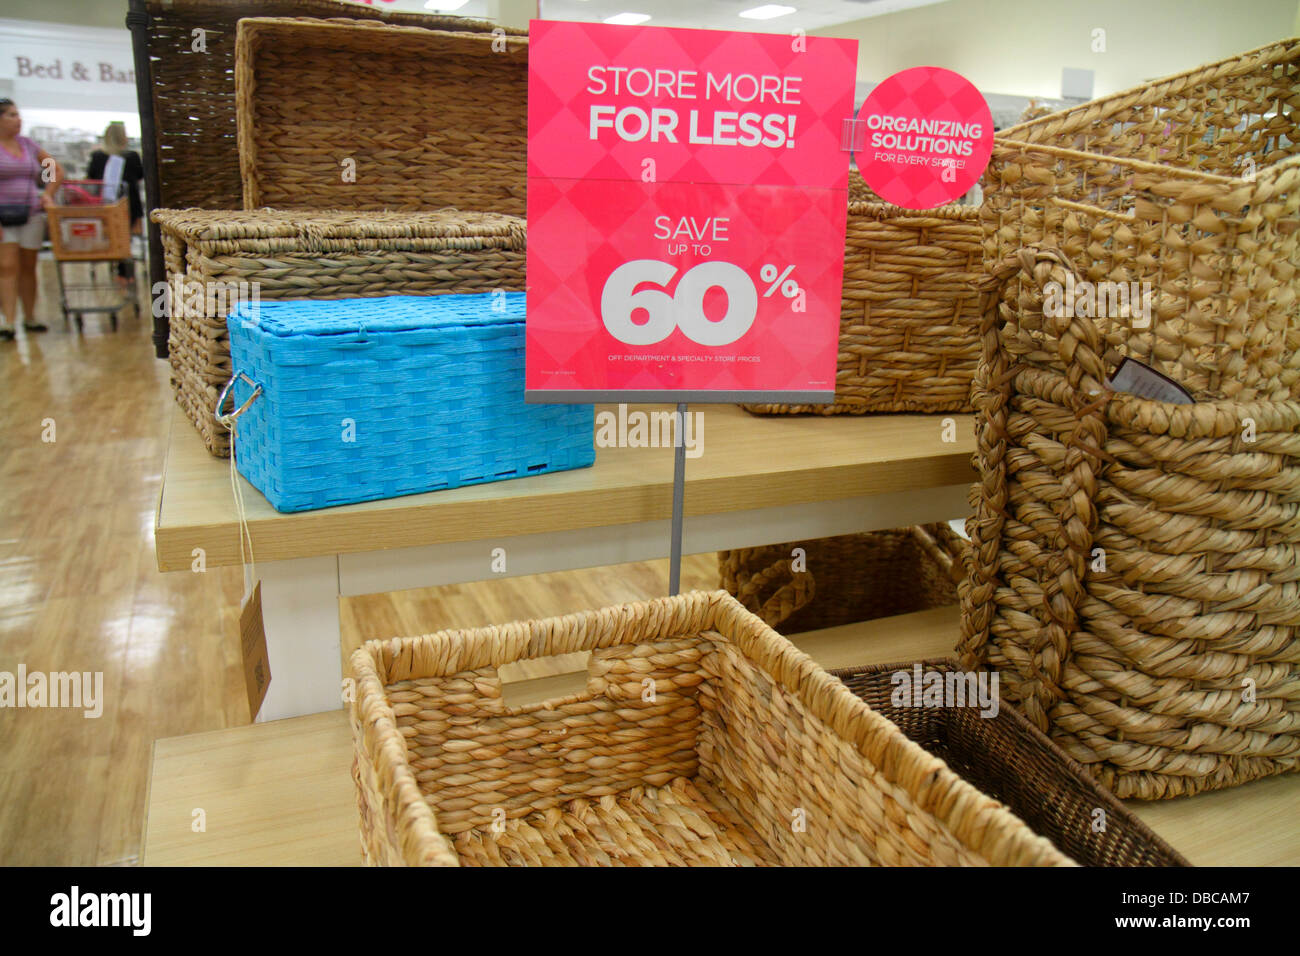 Miami Florida Aventura Marshalls Home Goods discount department store  retail display sale sign 60  off baskets storage. Miami Florida Aventura Marshalls Home Goods discount department